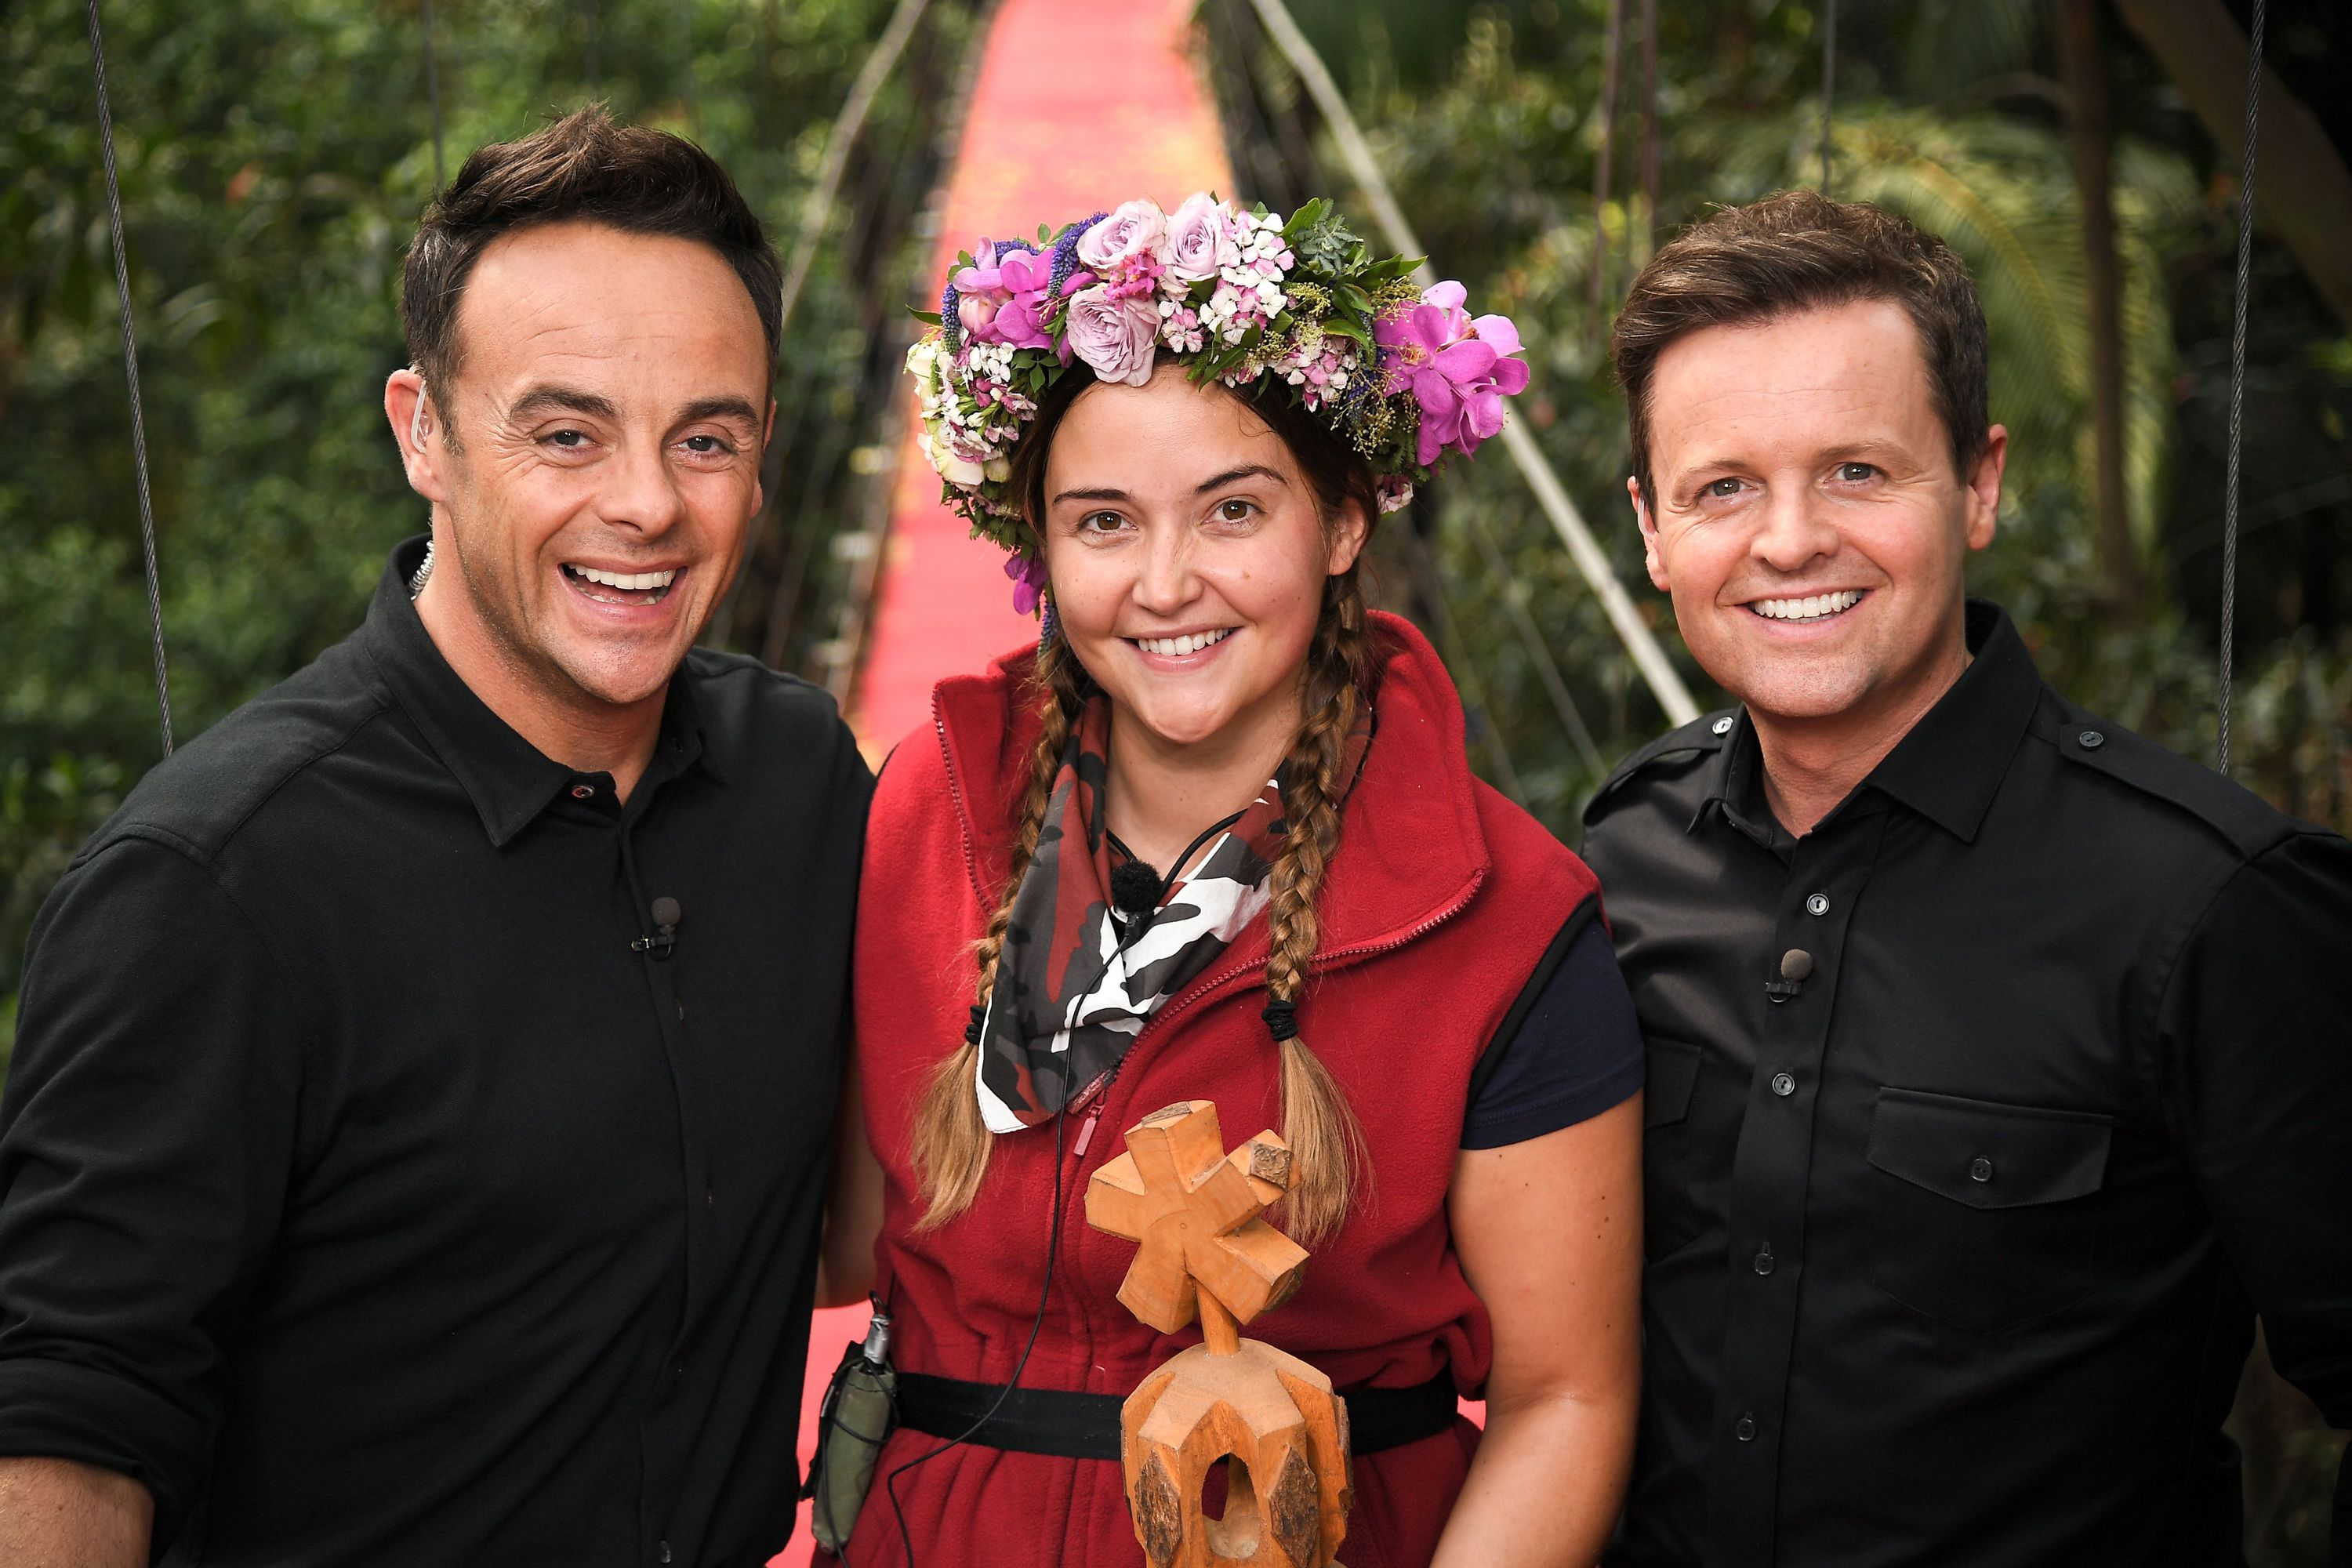 I'm a Celebrity final votes reveal close race for Jacqueline Jossa, Andy Whyment and Roman Kemp